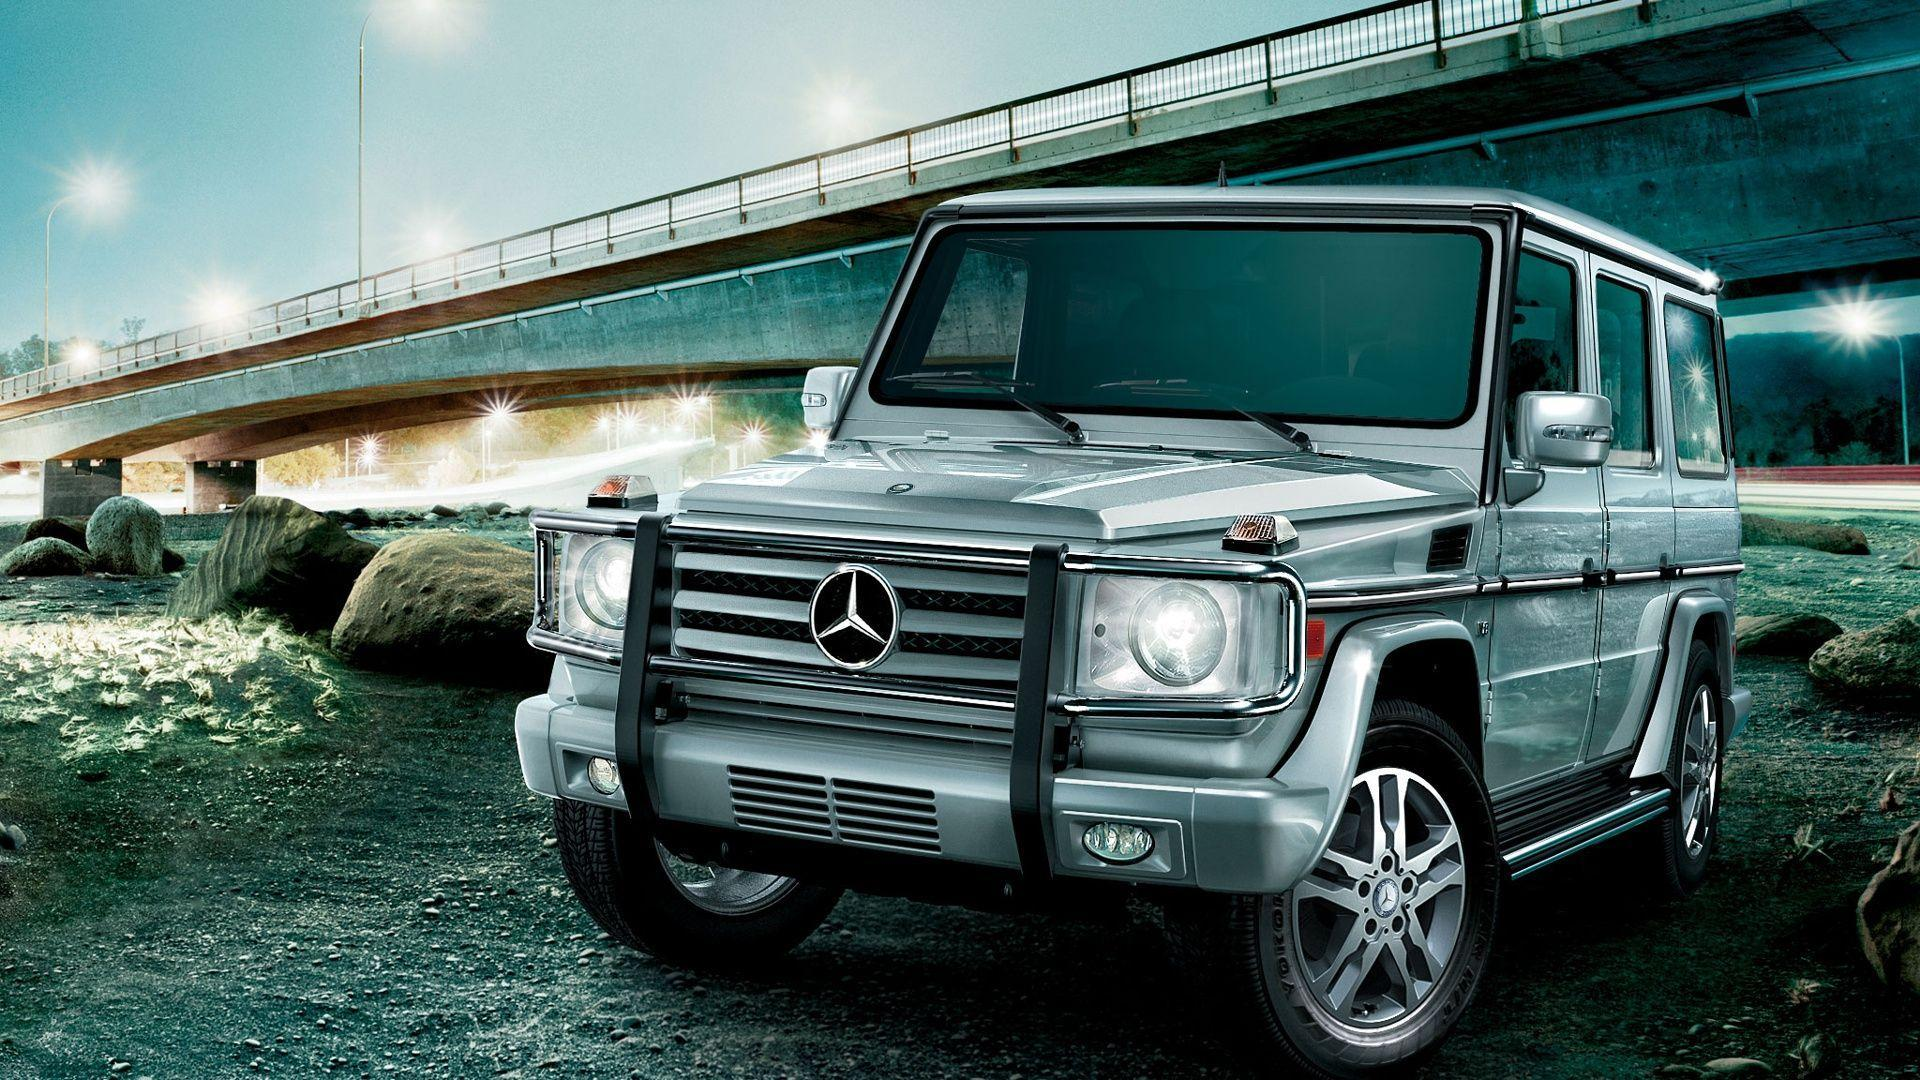 Mercedes Benz G Class Wallpapers Wallpaper Cave